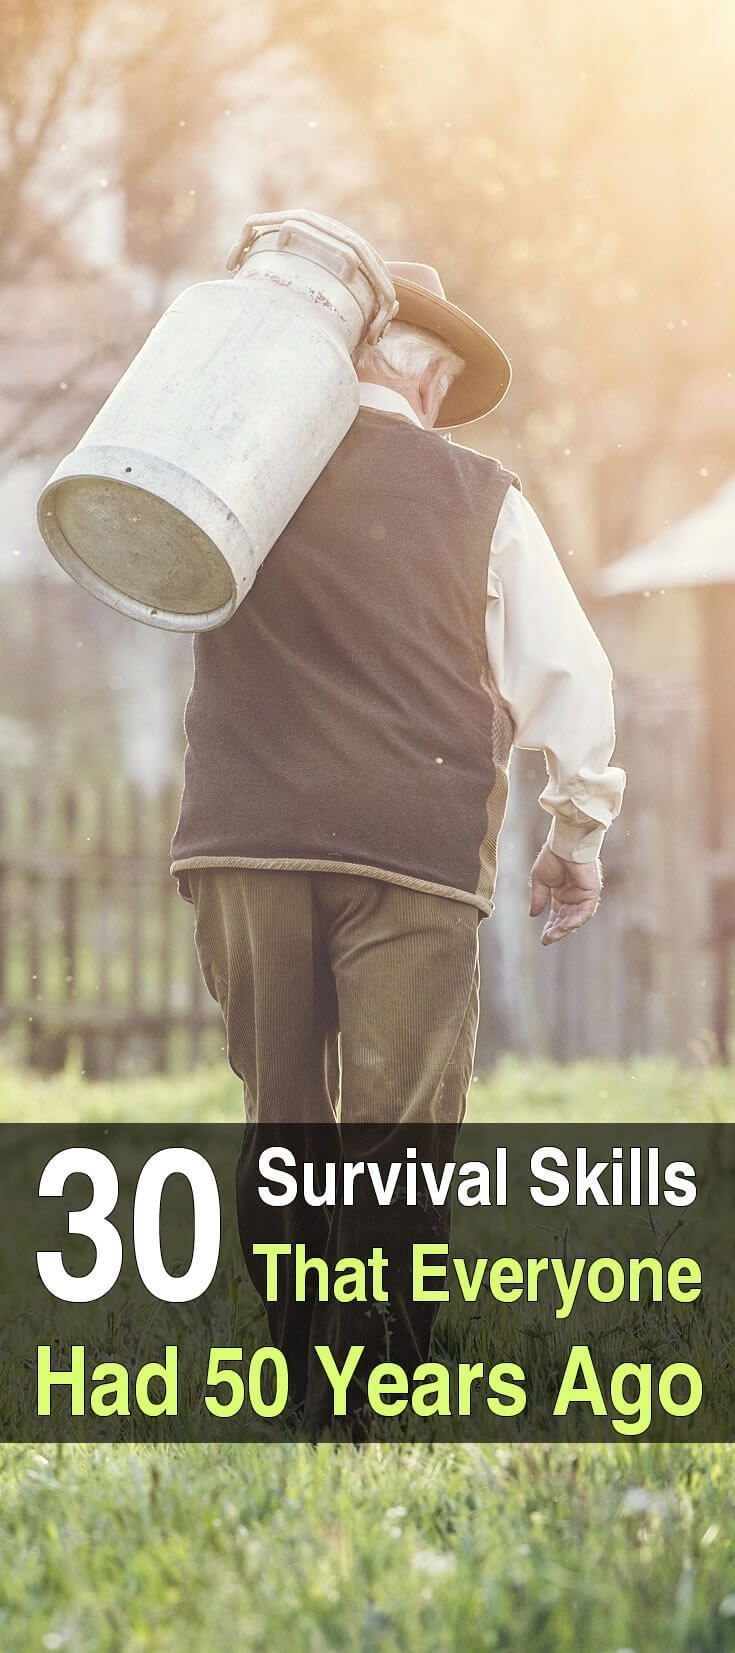 """There was a time when gardening, purifying water, and building a fire were considered common knowledge. Now they're called """"survival skills."""""""